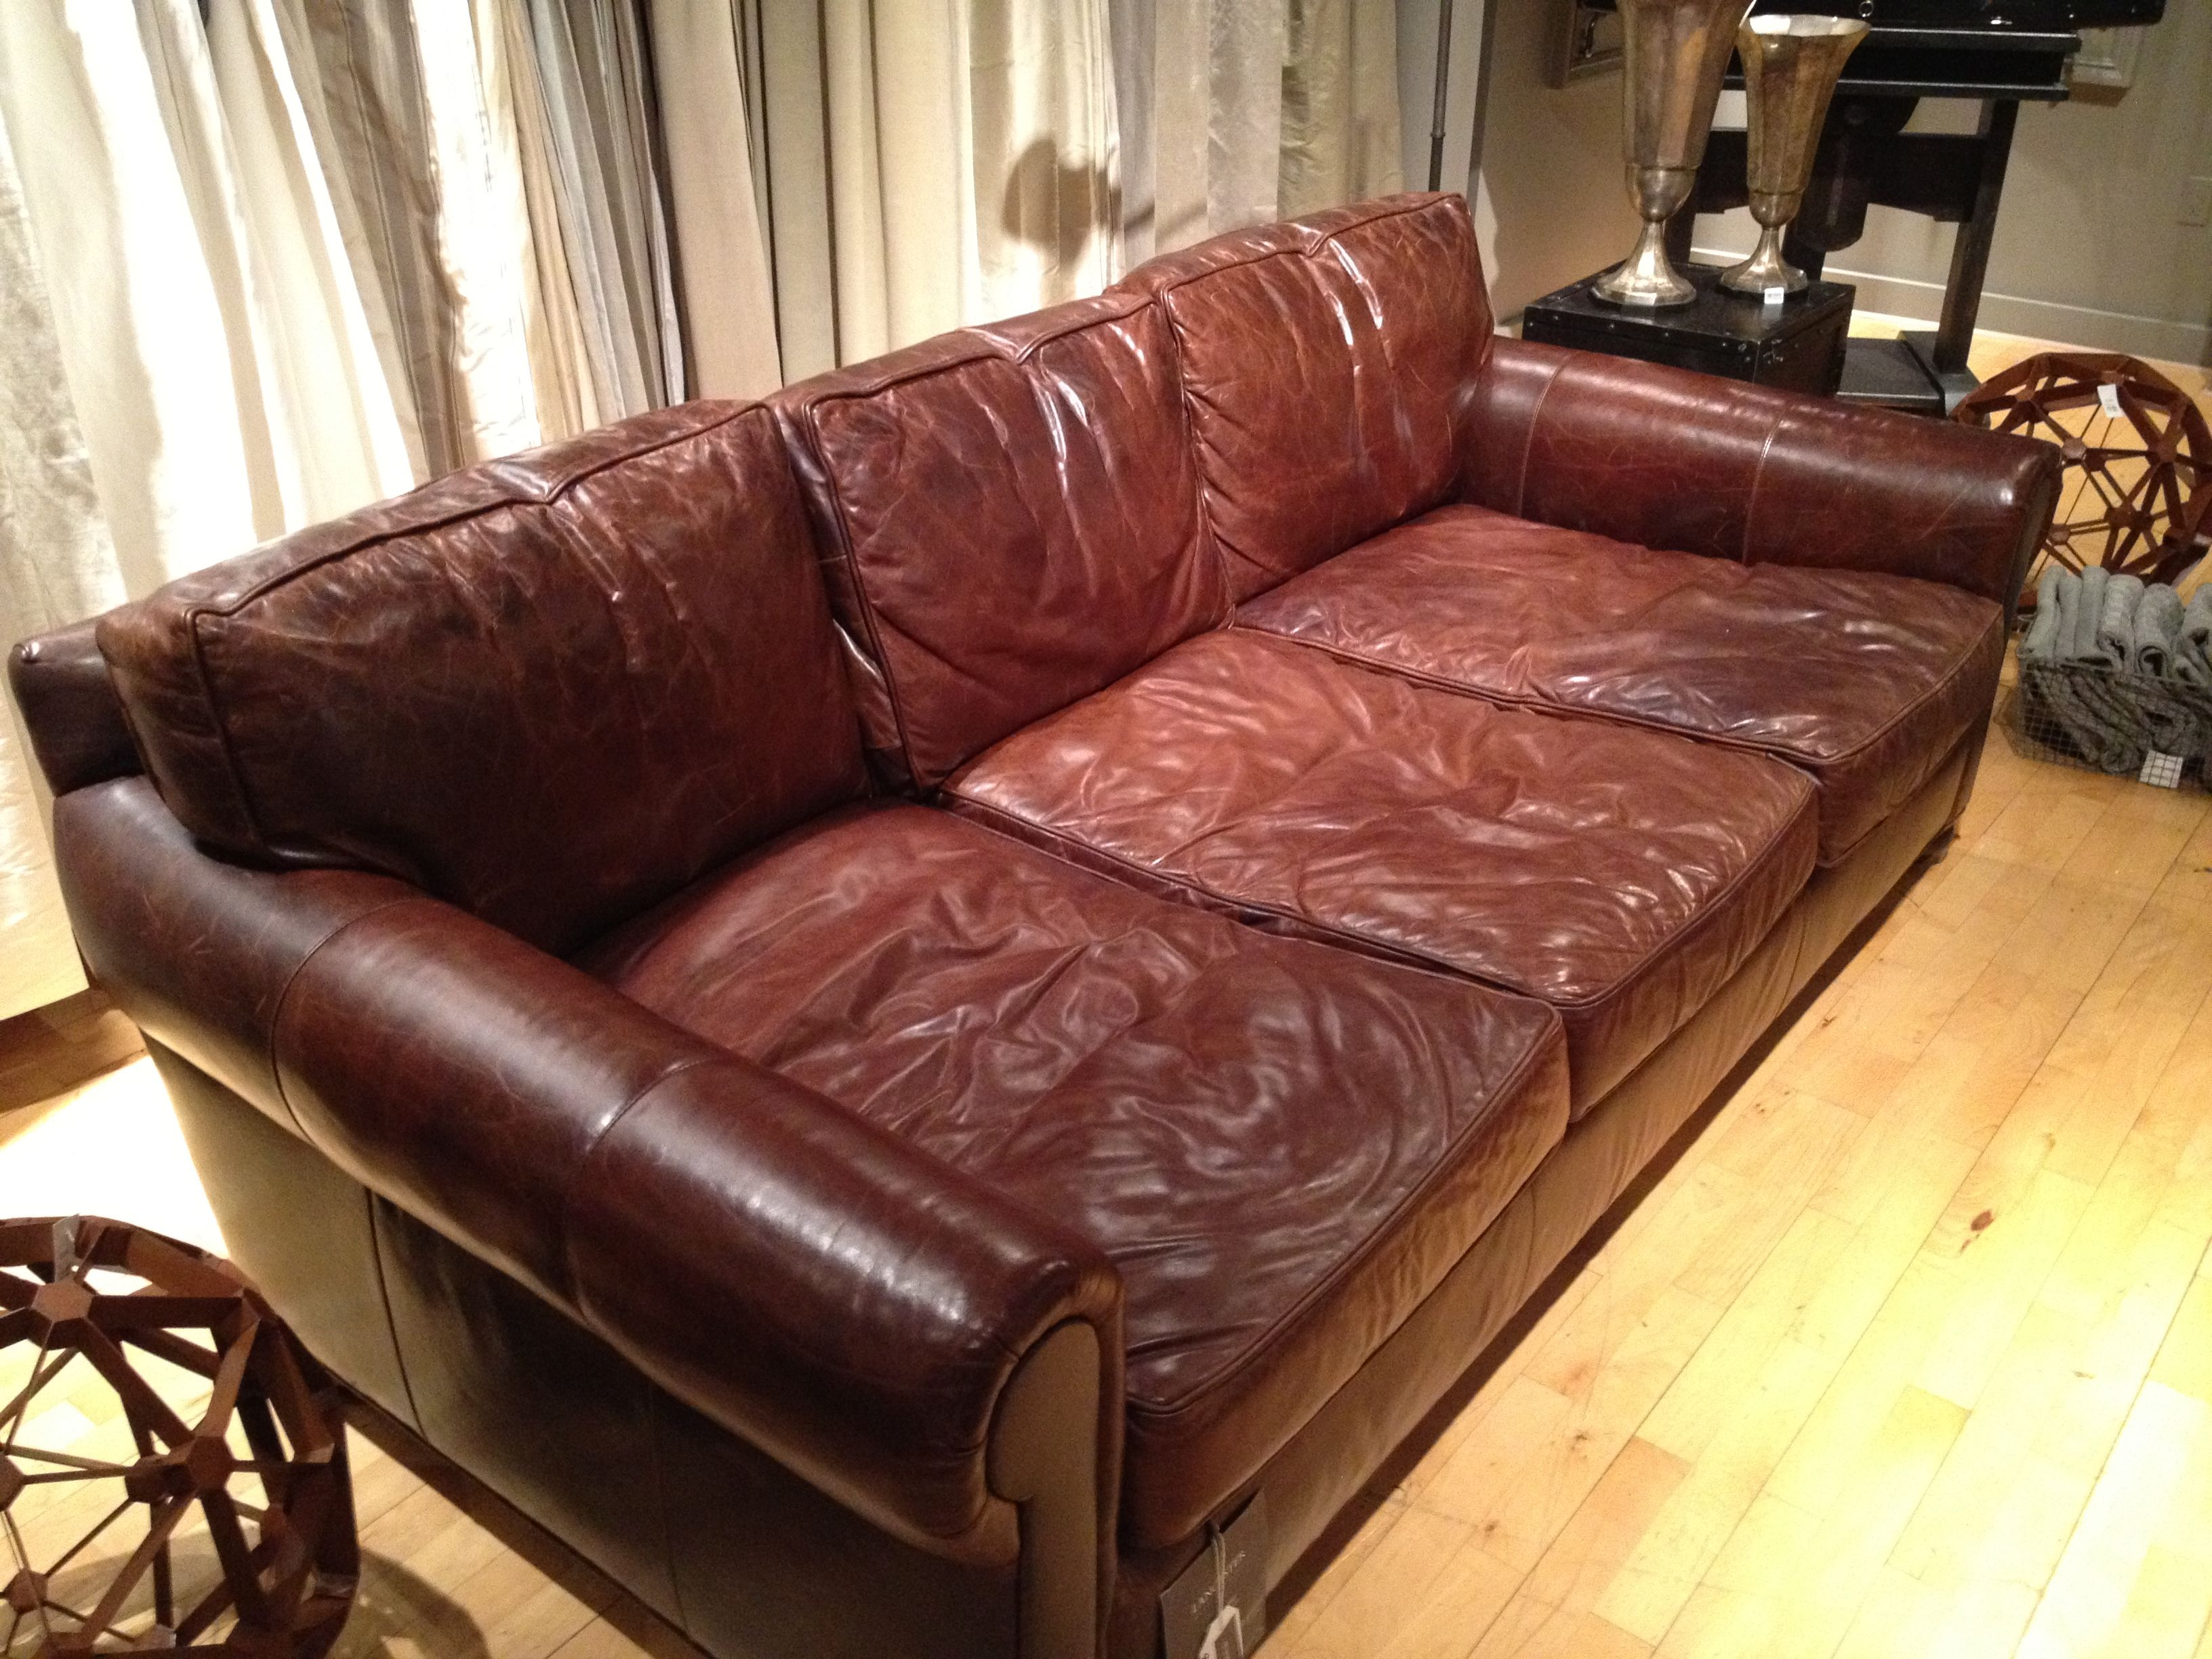 Adorable Wide Leather Sofa Luxury Wide Leather Sofa 15 With Additional Sofas And Couches Set With Wide Leather Sofa Ht Deep Sofa Leather Sofa Leather Couch